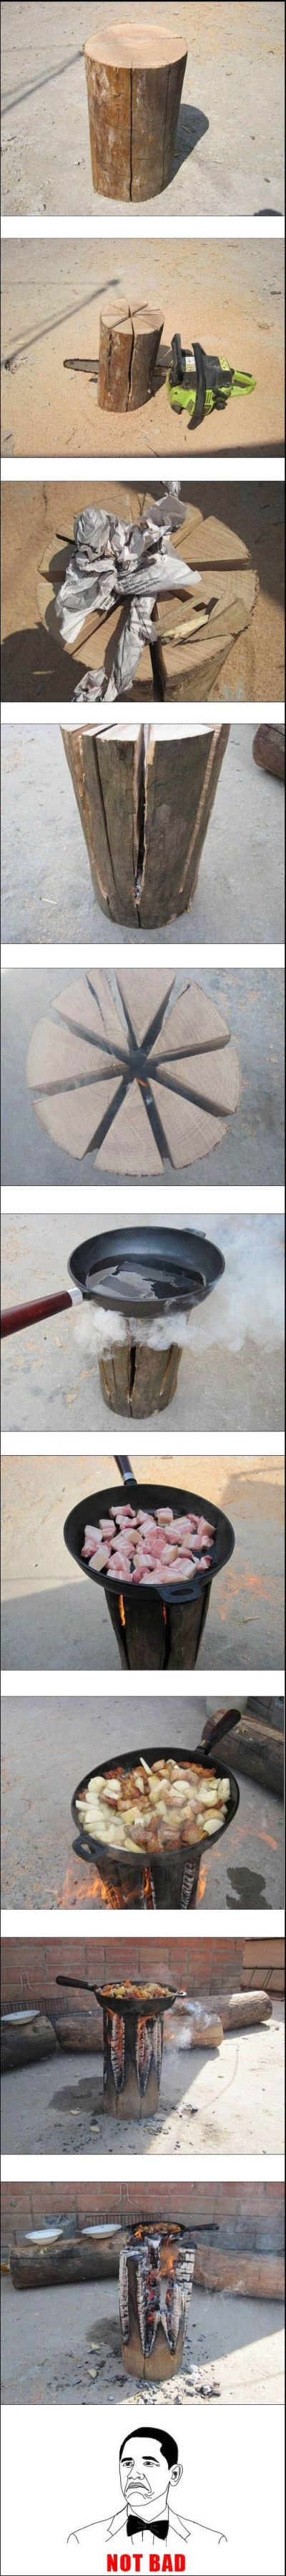 Barbecue made with a log of wood